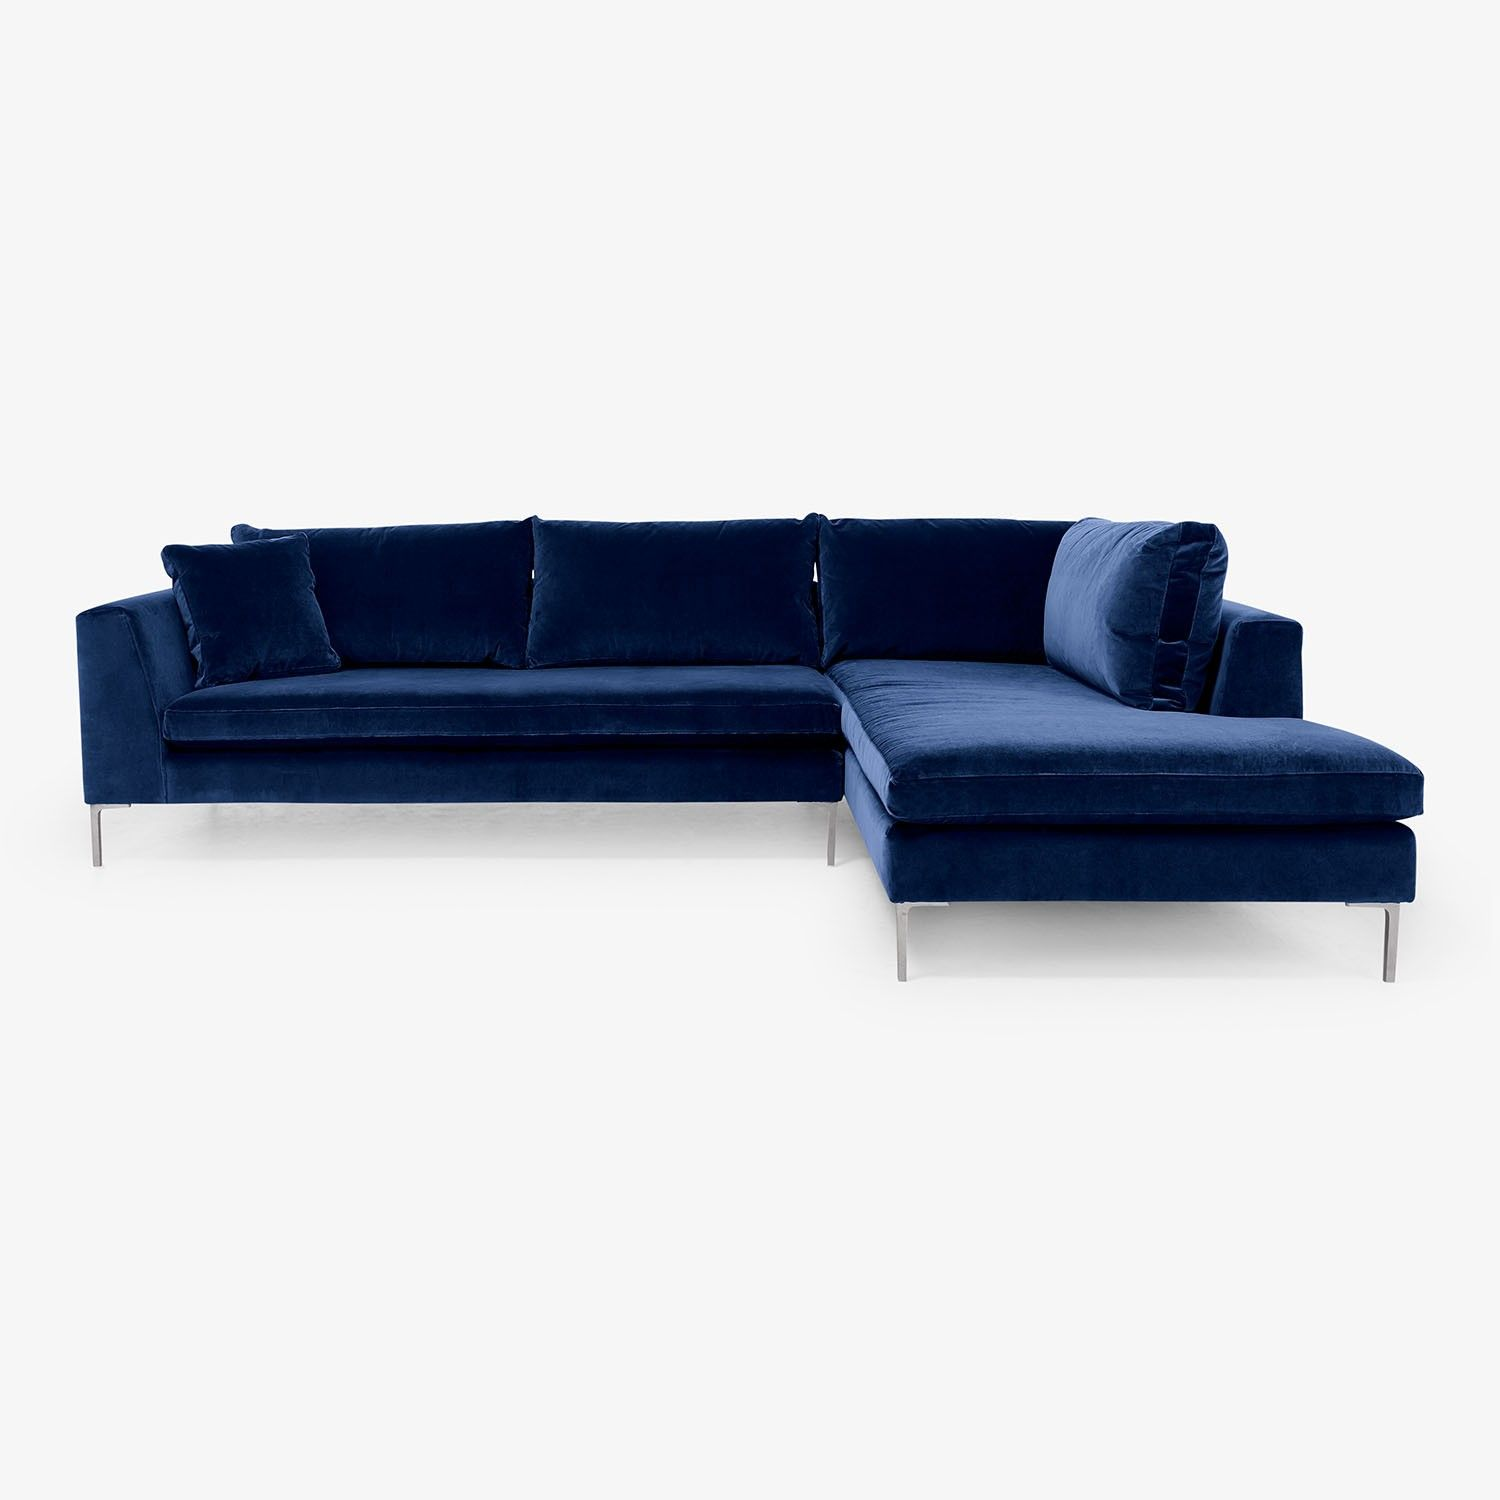 Exclusively at ABC, the sectional sits handsomely on slim, exposed ...